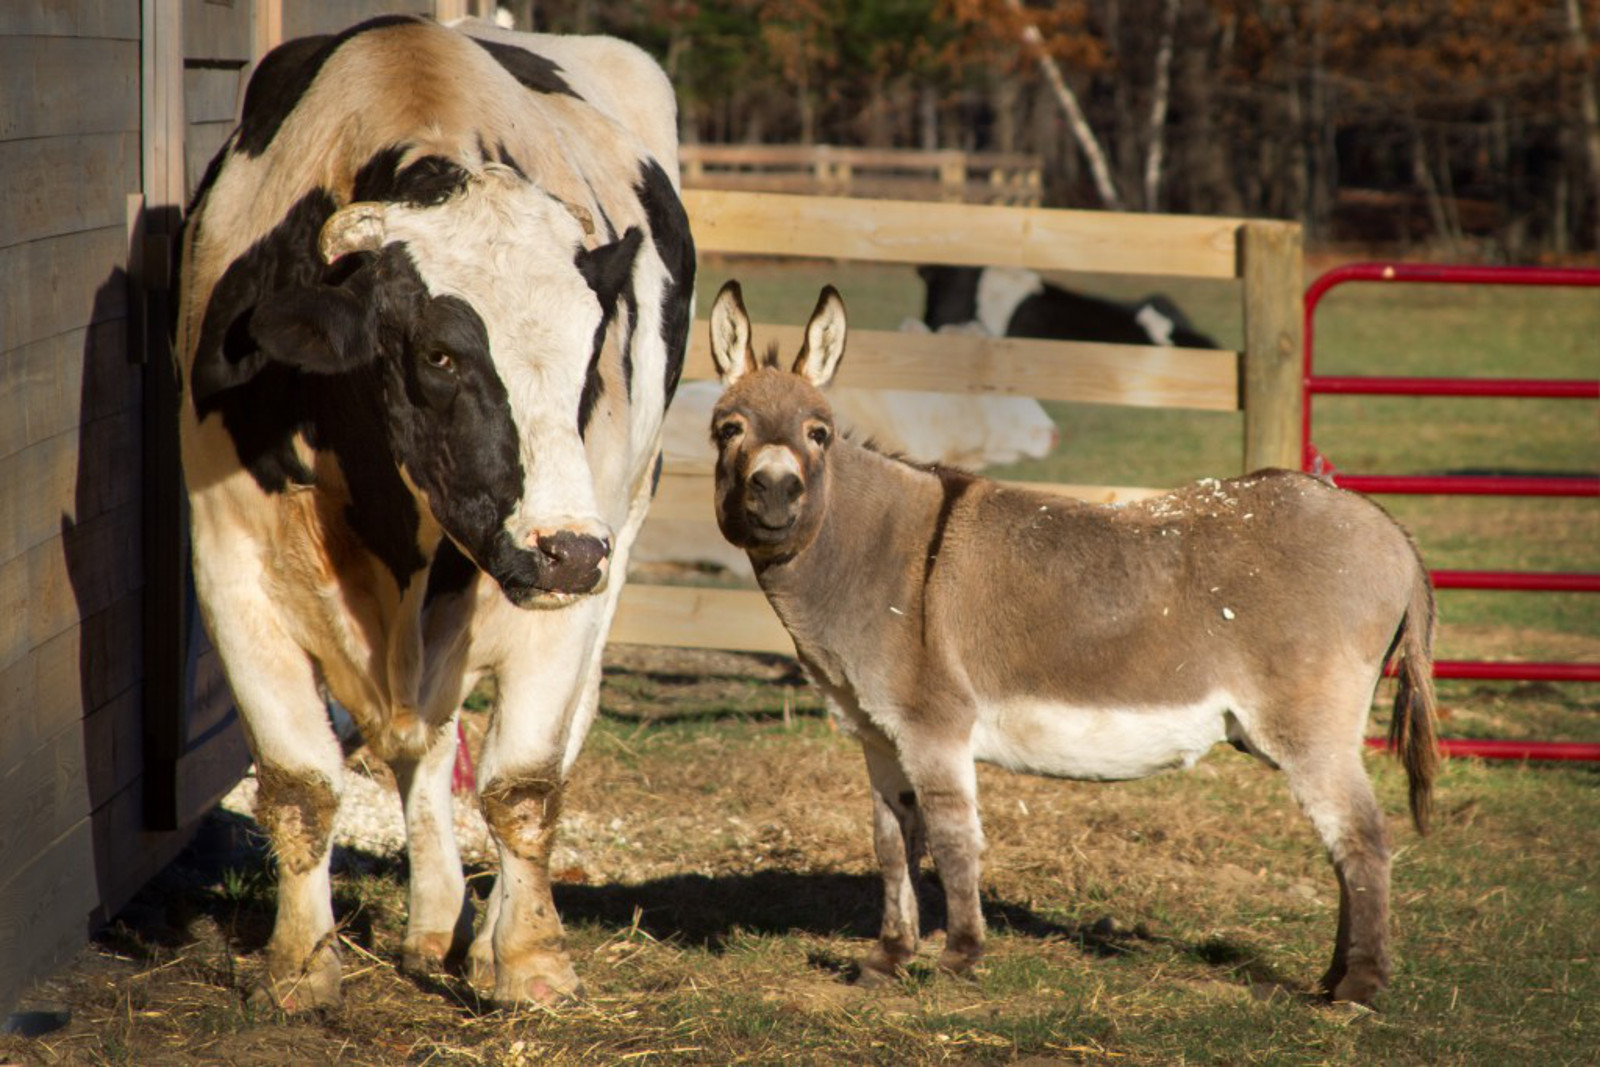 Cow and Donkey That Survived Deplorable Petting Zoo Now BFFs in New Home